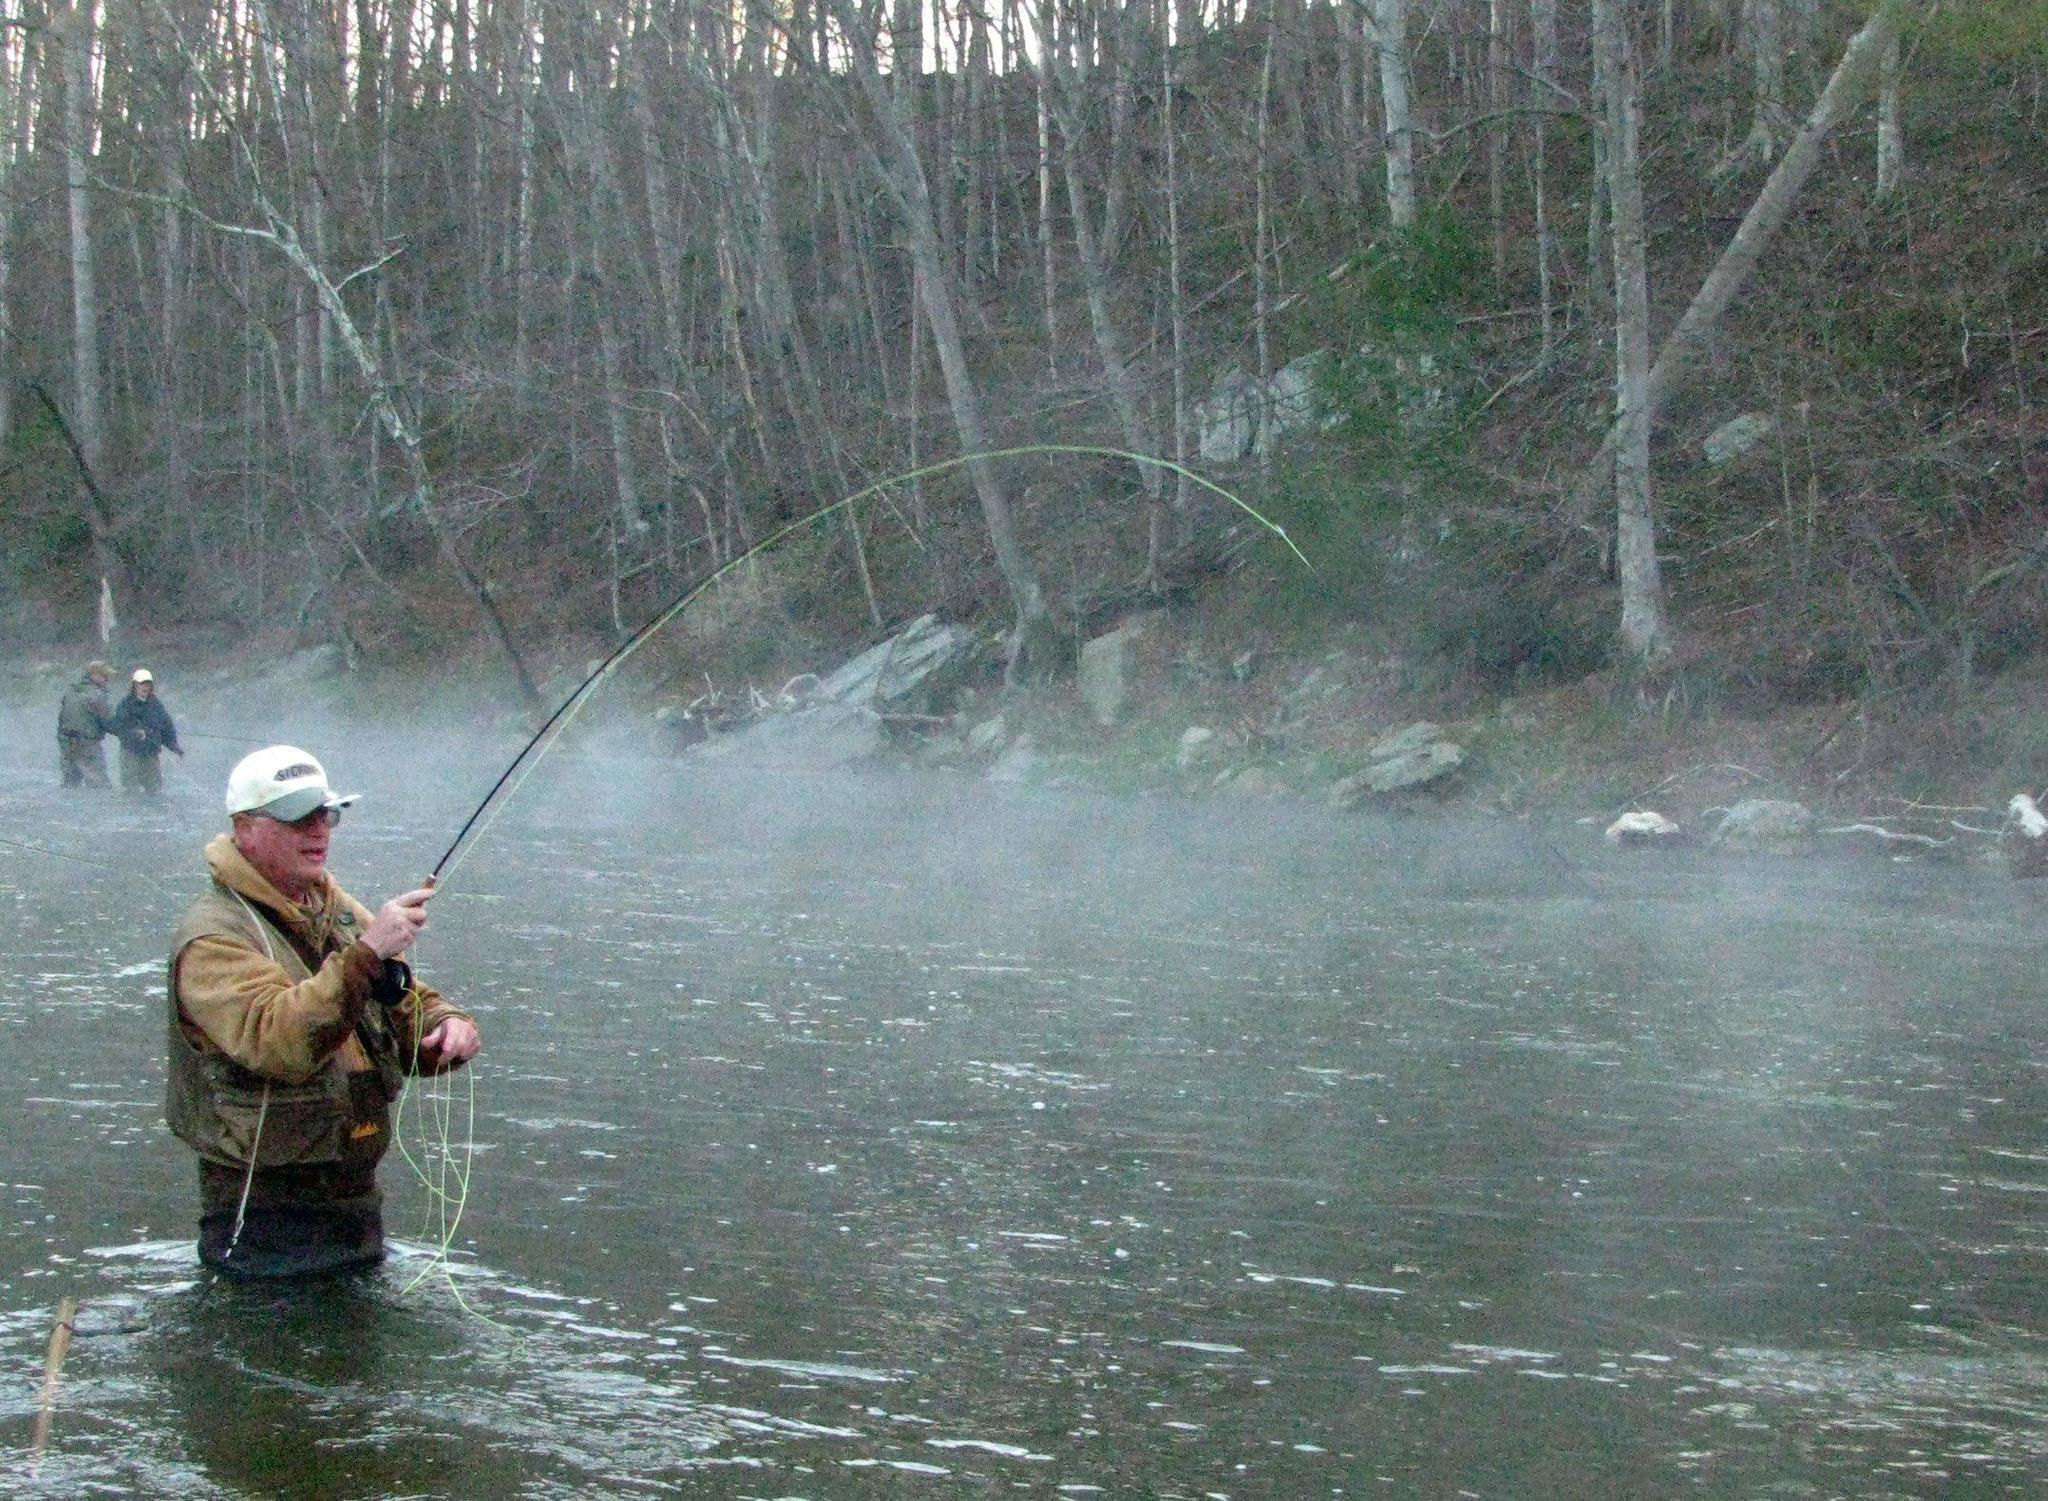 Shad fishing a rite of spring - Carroll County Times